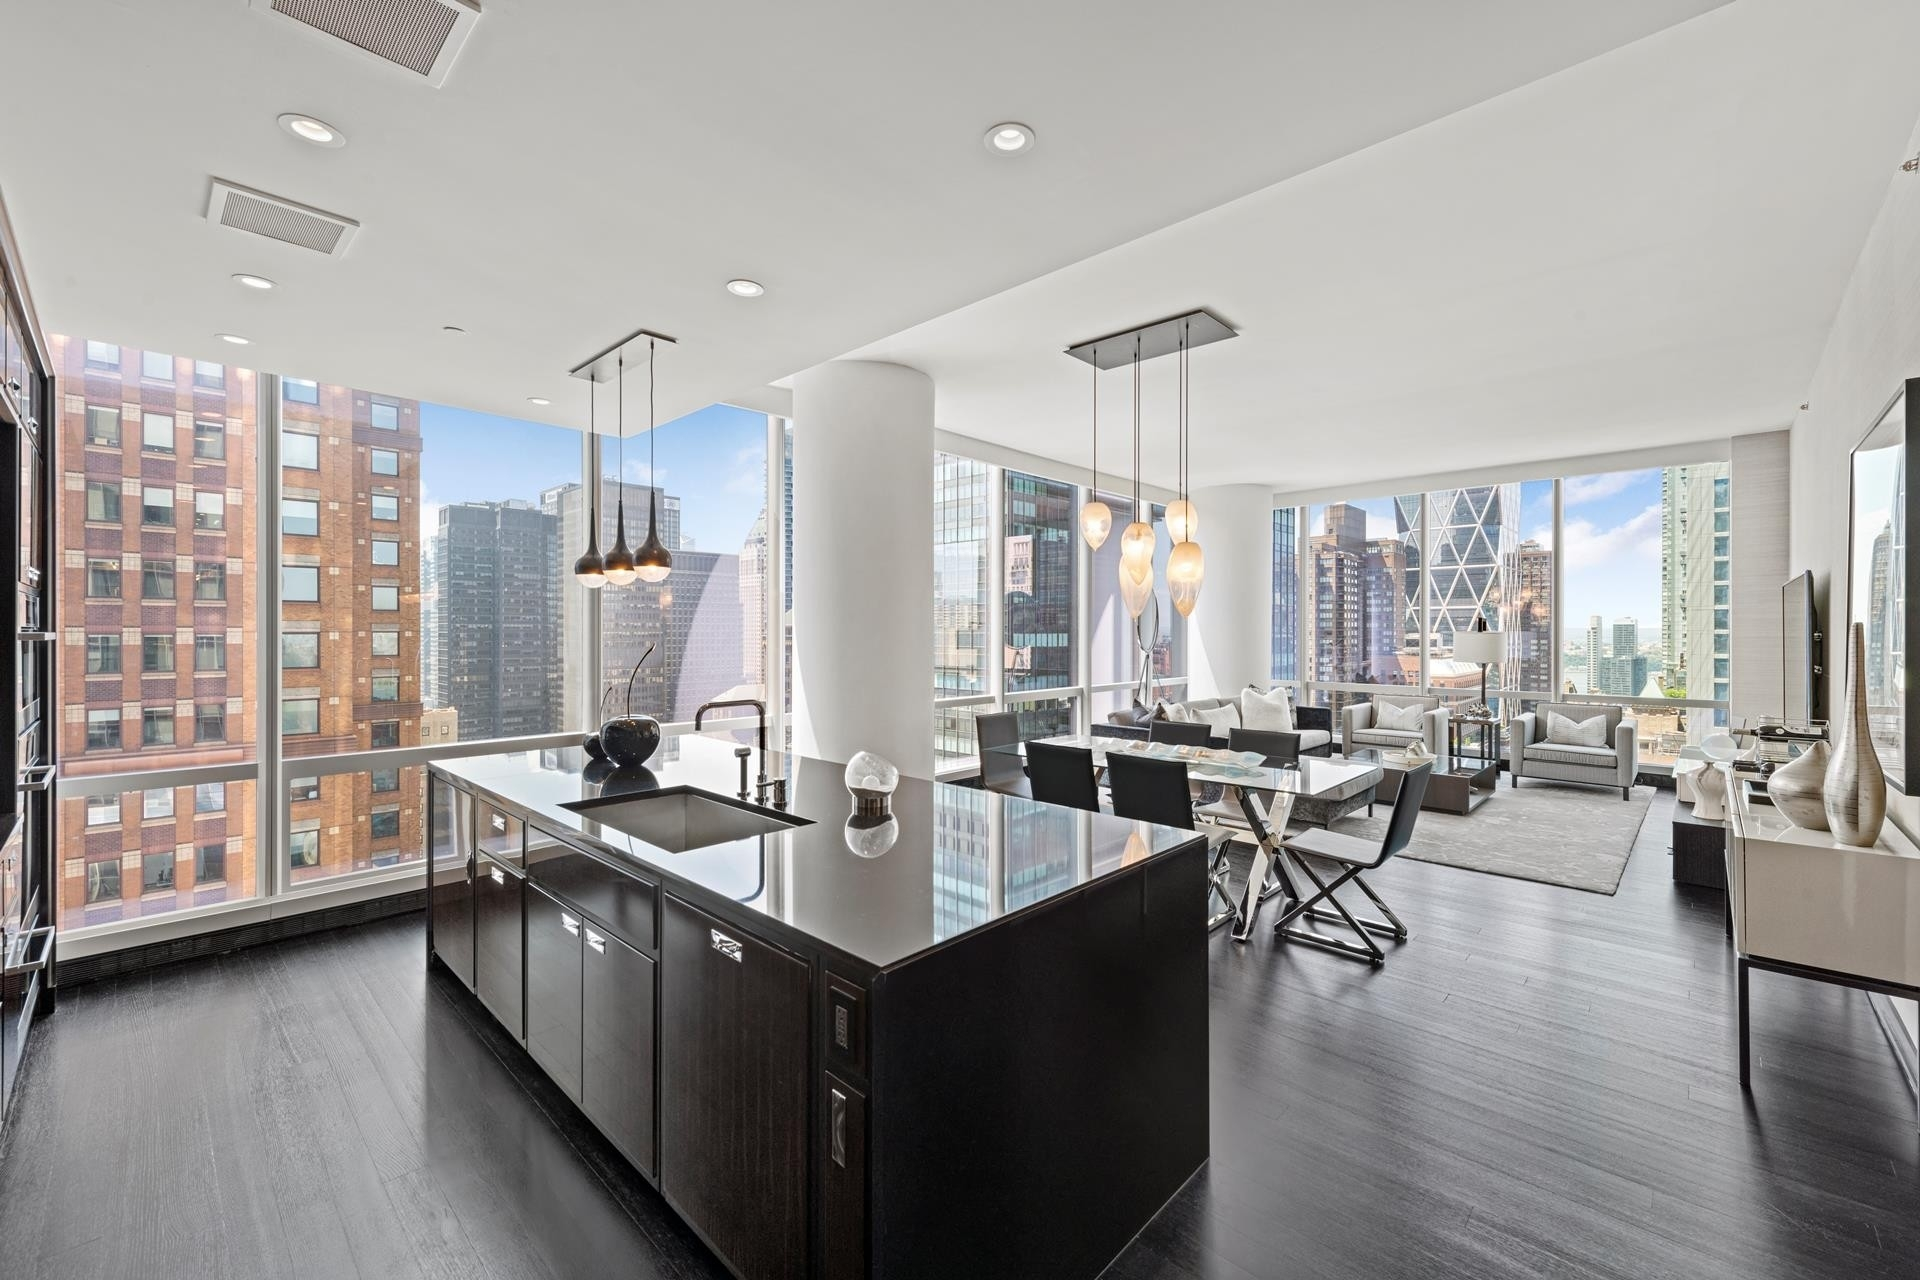 Property at 157 East 57th St, 37C Midtown East, New York, NY 10022